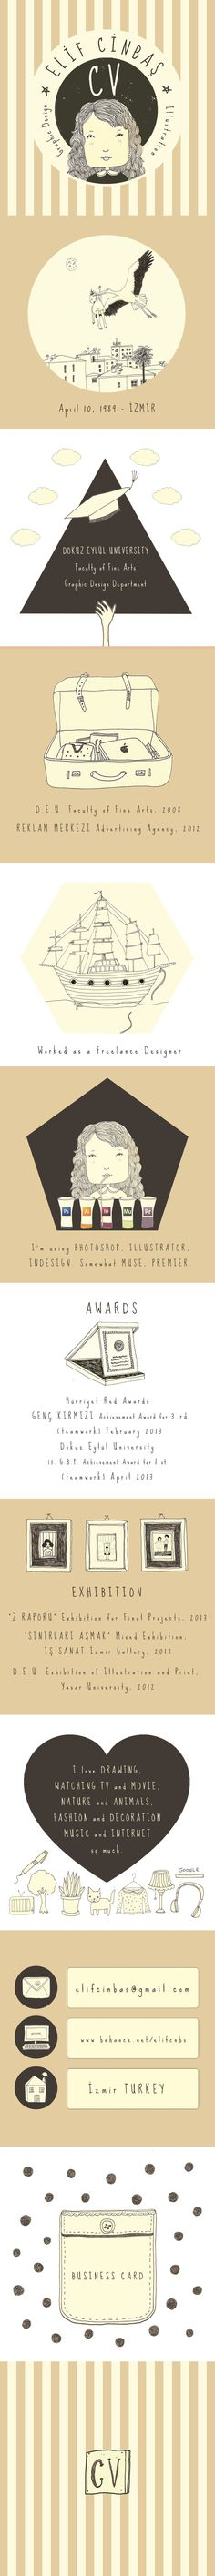 Illustrations of my CV design by elif cinbaş, via Behance